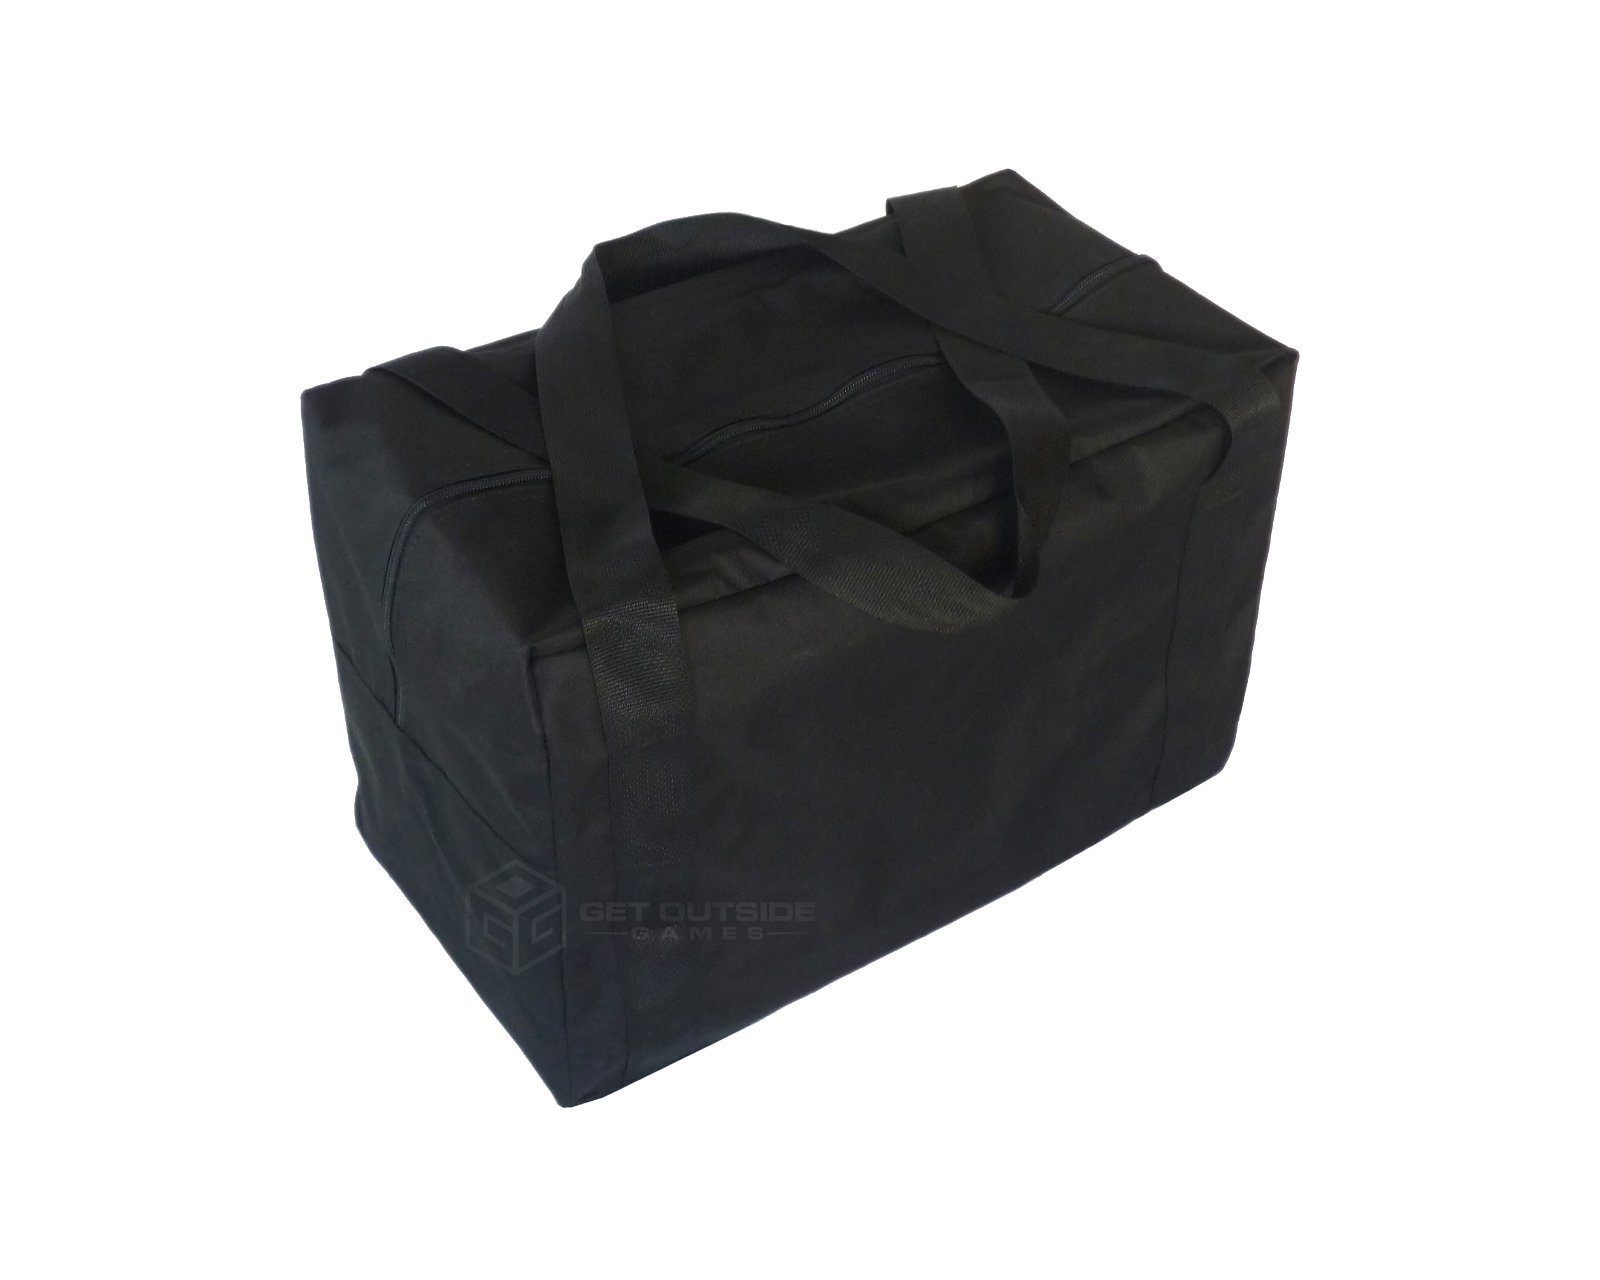 Carry Case & Storage Bag for Giant Tumble Block Games by Get Outside Games